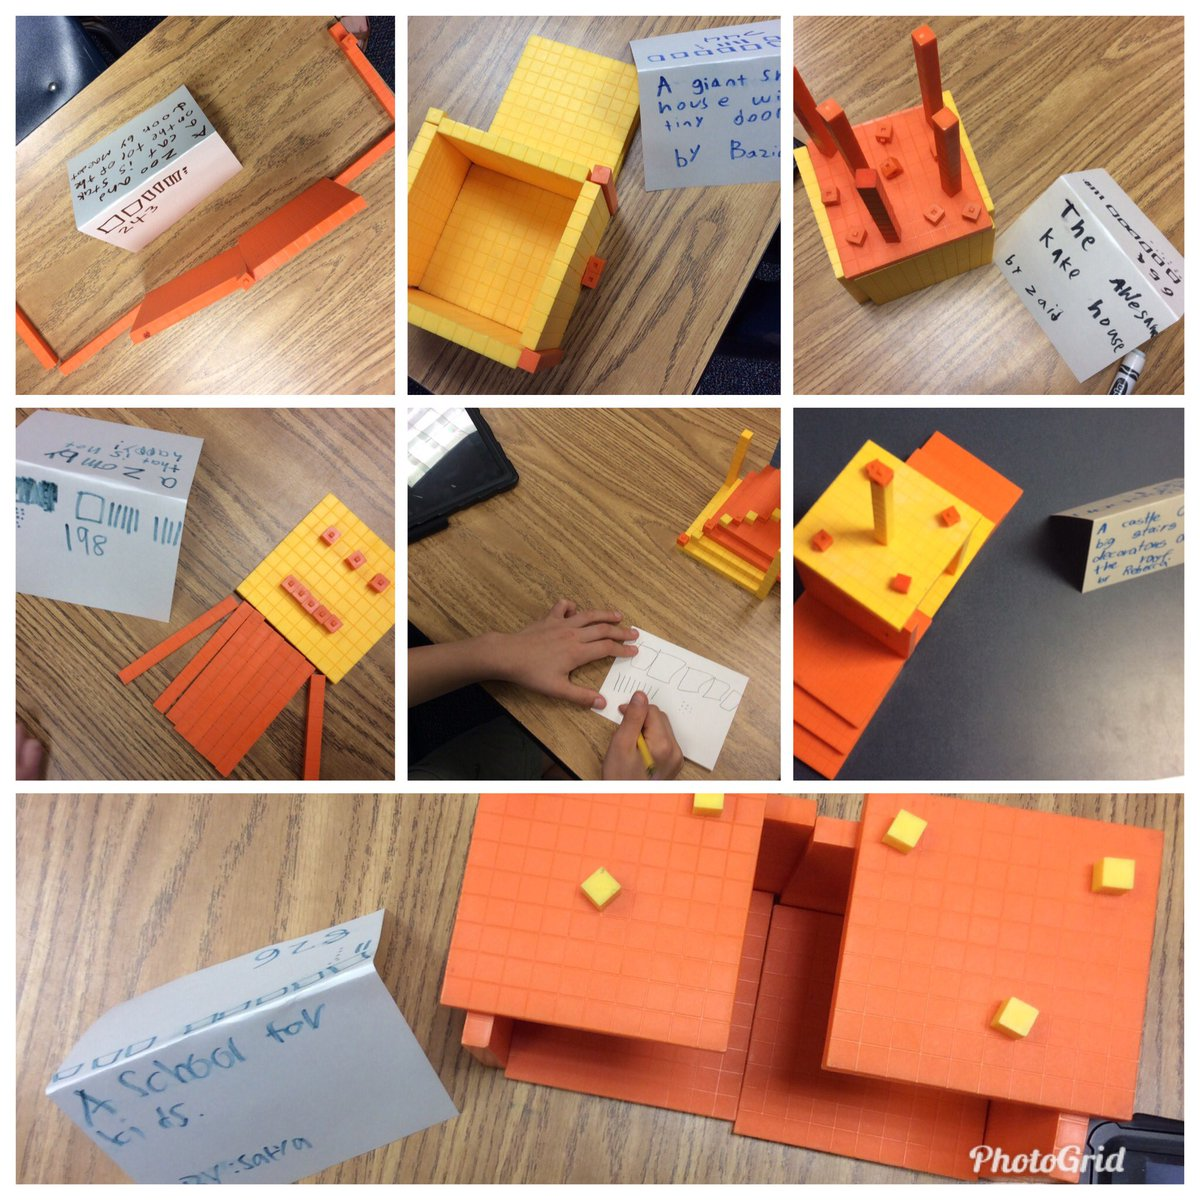 Exhibits from our 2nd grade place value museum today.  What is the value of your exhibit? <a target='_blank' href='http://twitter.com/CampbellAPS'>@CampbellAPS</a> <a target='_blank' href='http://twitter.com/nawazishtareen'>@nawazishtareen</a> <a target='_blank' href='http://twitter.com/APSGifted'>@APSGifted</a> <a target='_blank' href='https://t.co/qeFeV0AC65'>https://t.co/qeFeV0AC65</a>